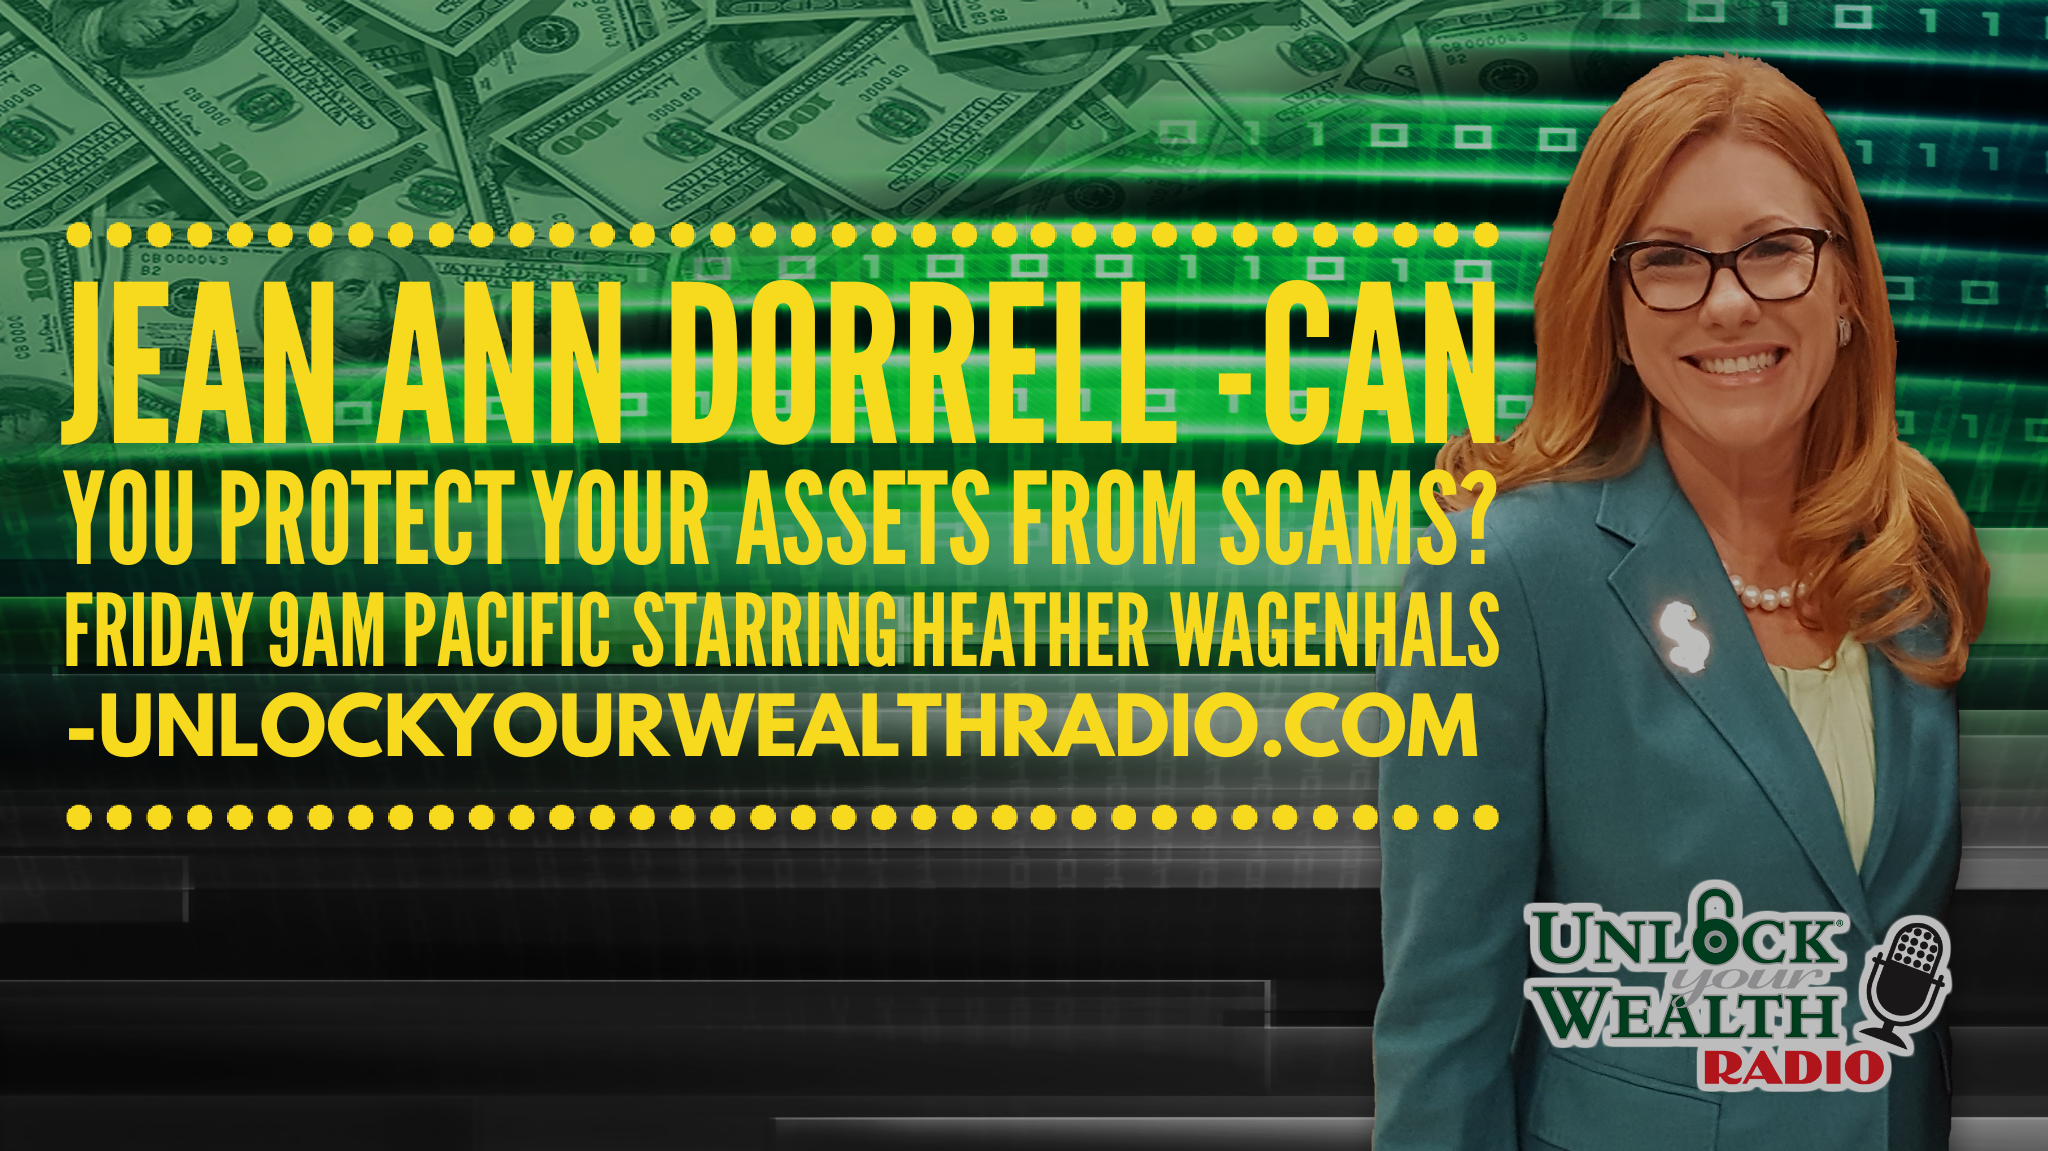 Jean Ann Dorrell Helps Seniors Avoid Scams on Unlock Your Wealth Radio Starring Heather Wagenhals